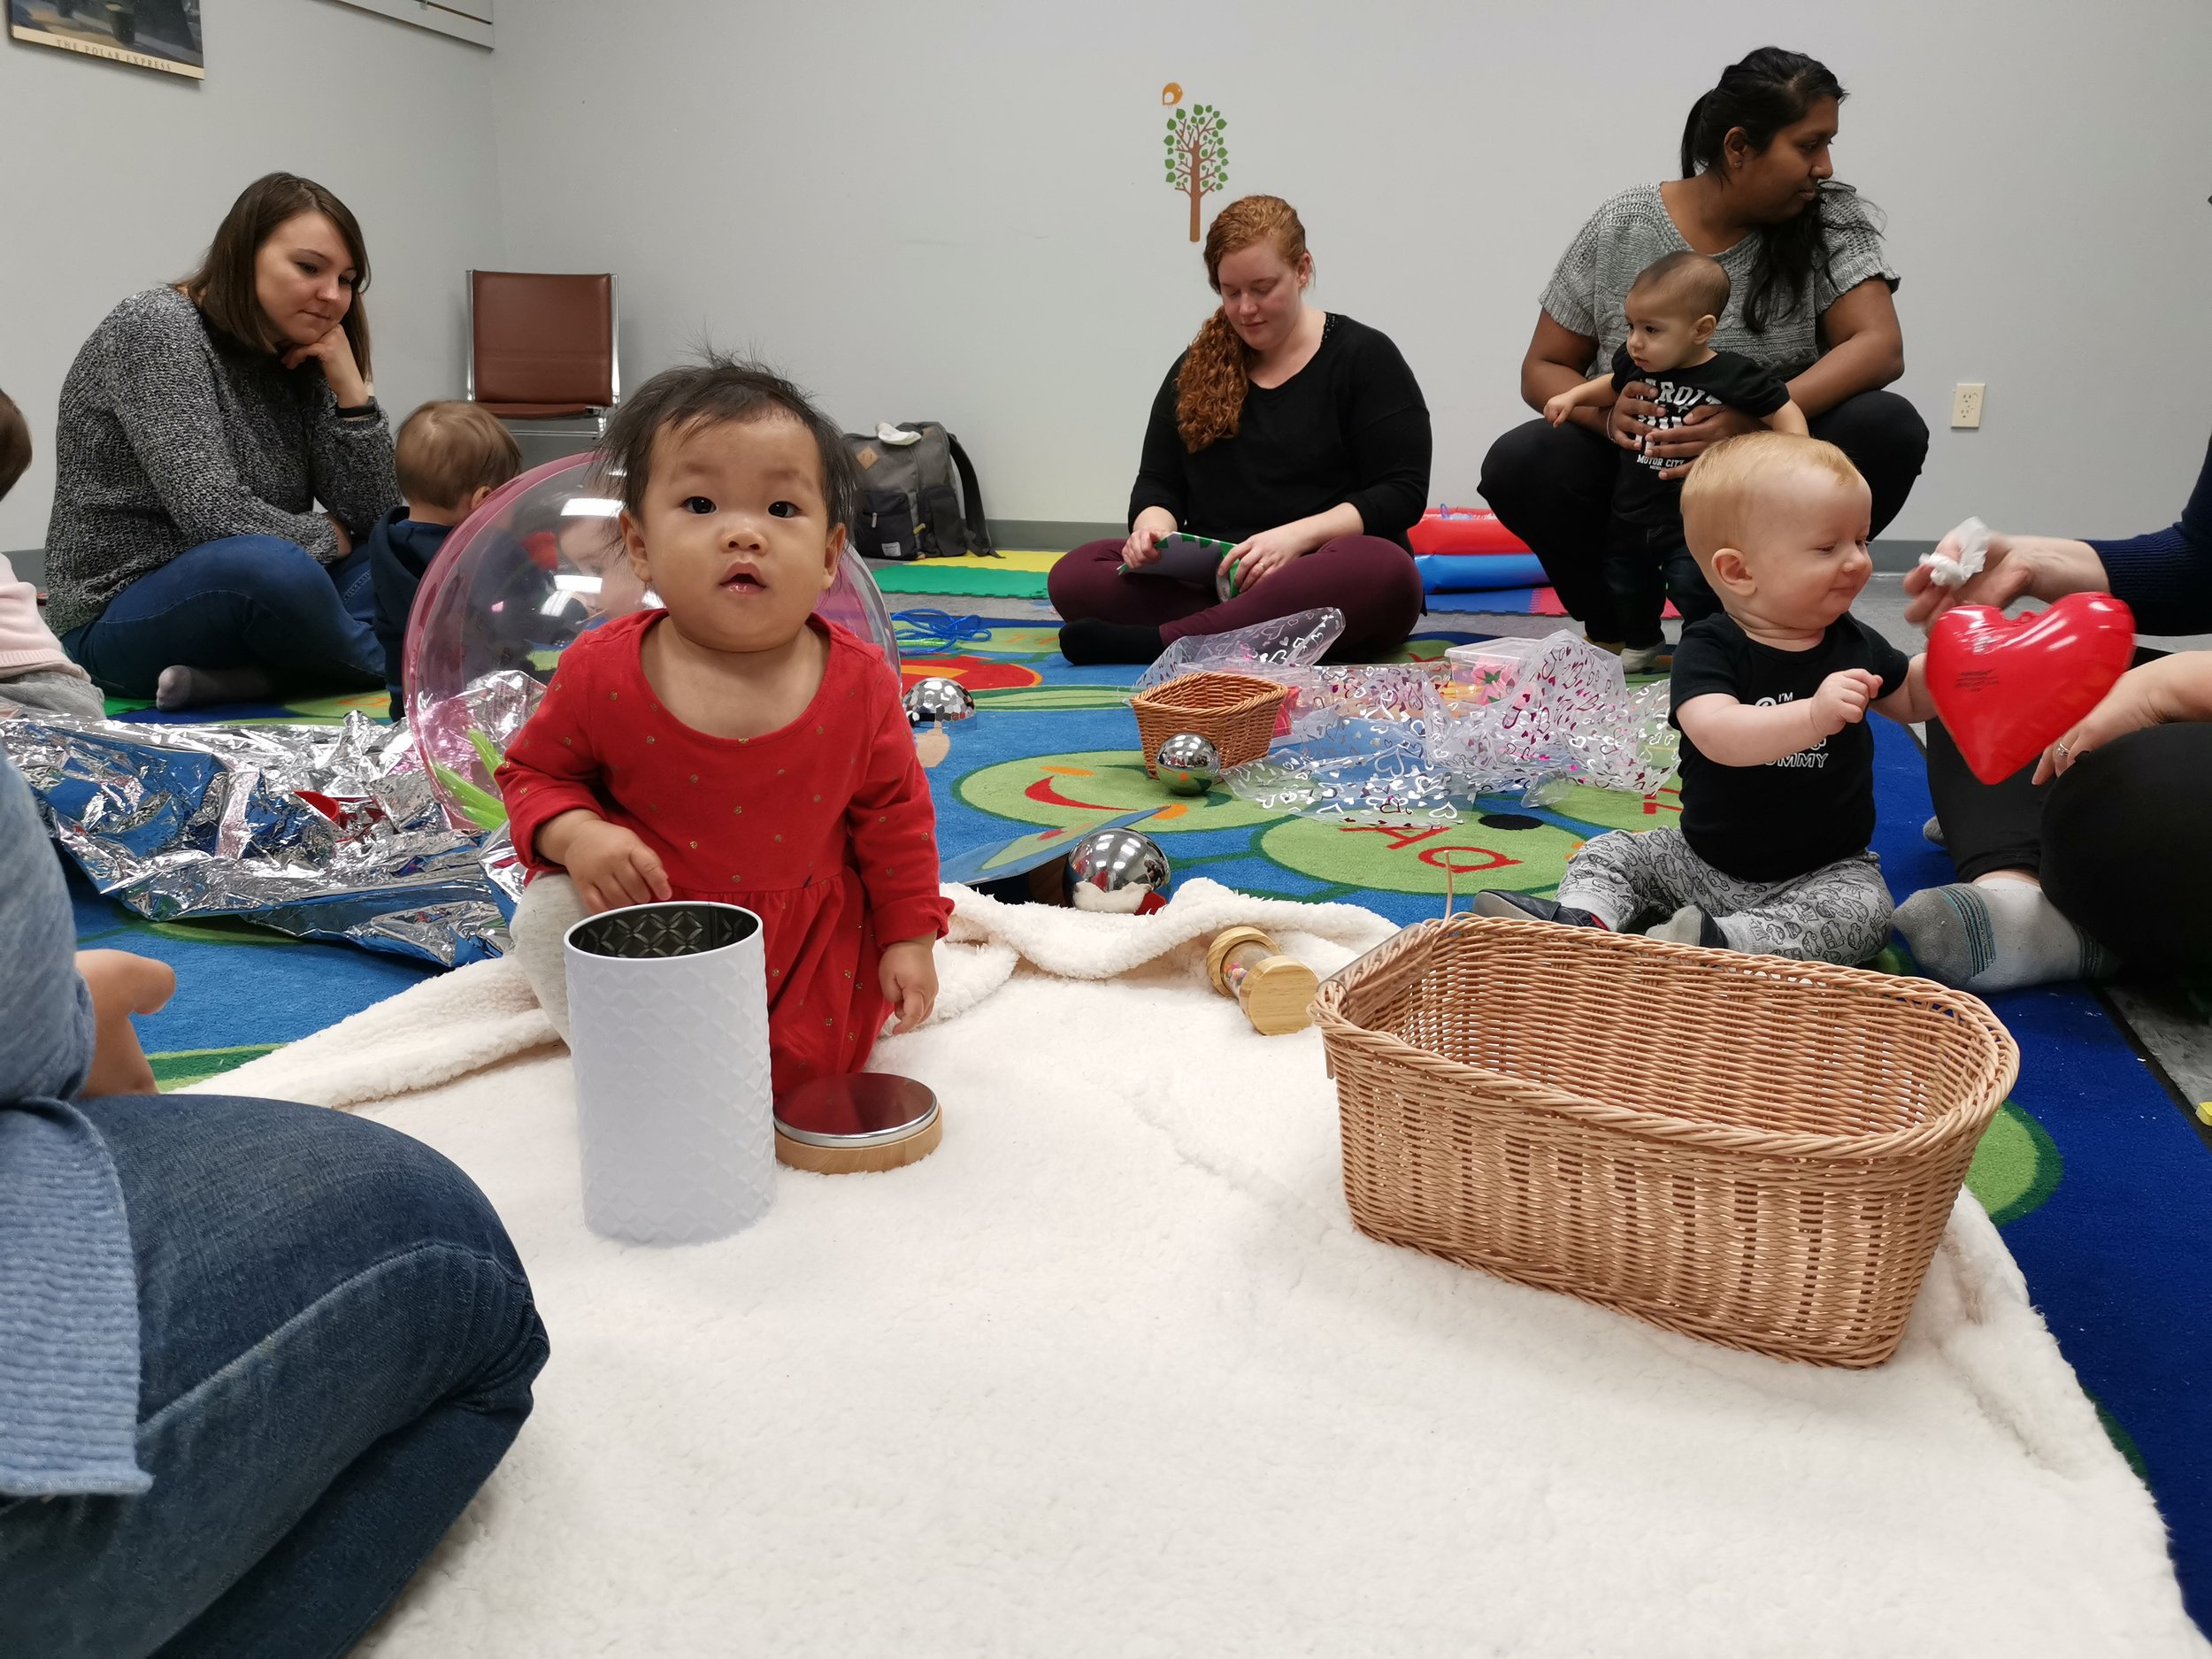 Help us help parents. - Our parent support programs and services are free, and while Childreach does receive some government funding, we rely on the generosity of donors to keep intervening early and often - because a strong parent equals a strong child.Childreach is a Canadian Registered Charity. Our charitable registration number is 10691 3742 RR0001.